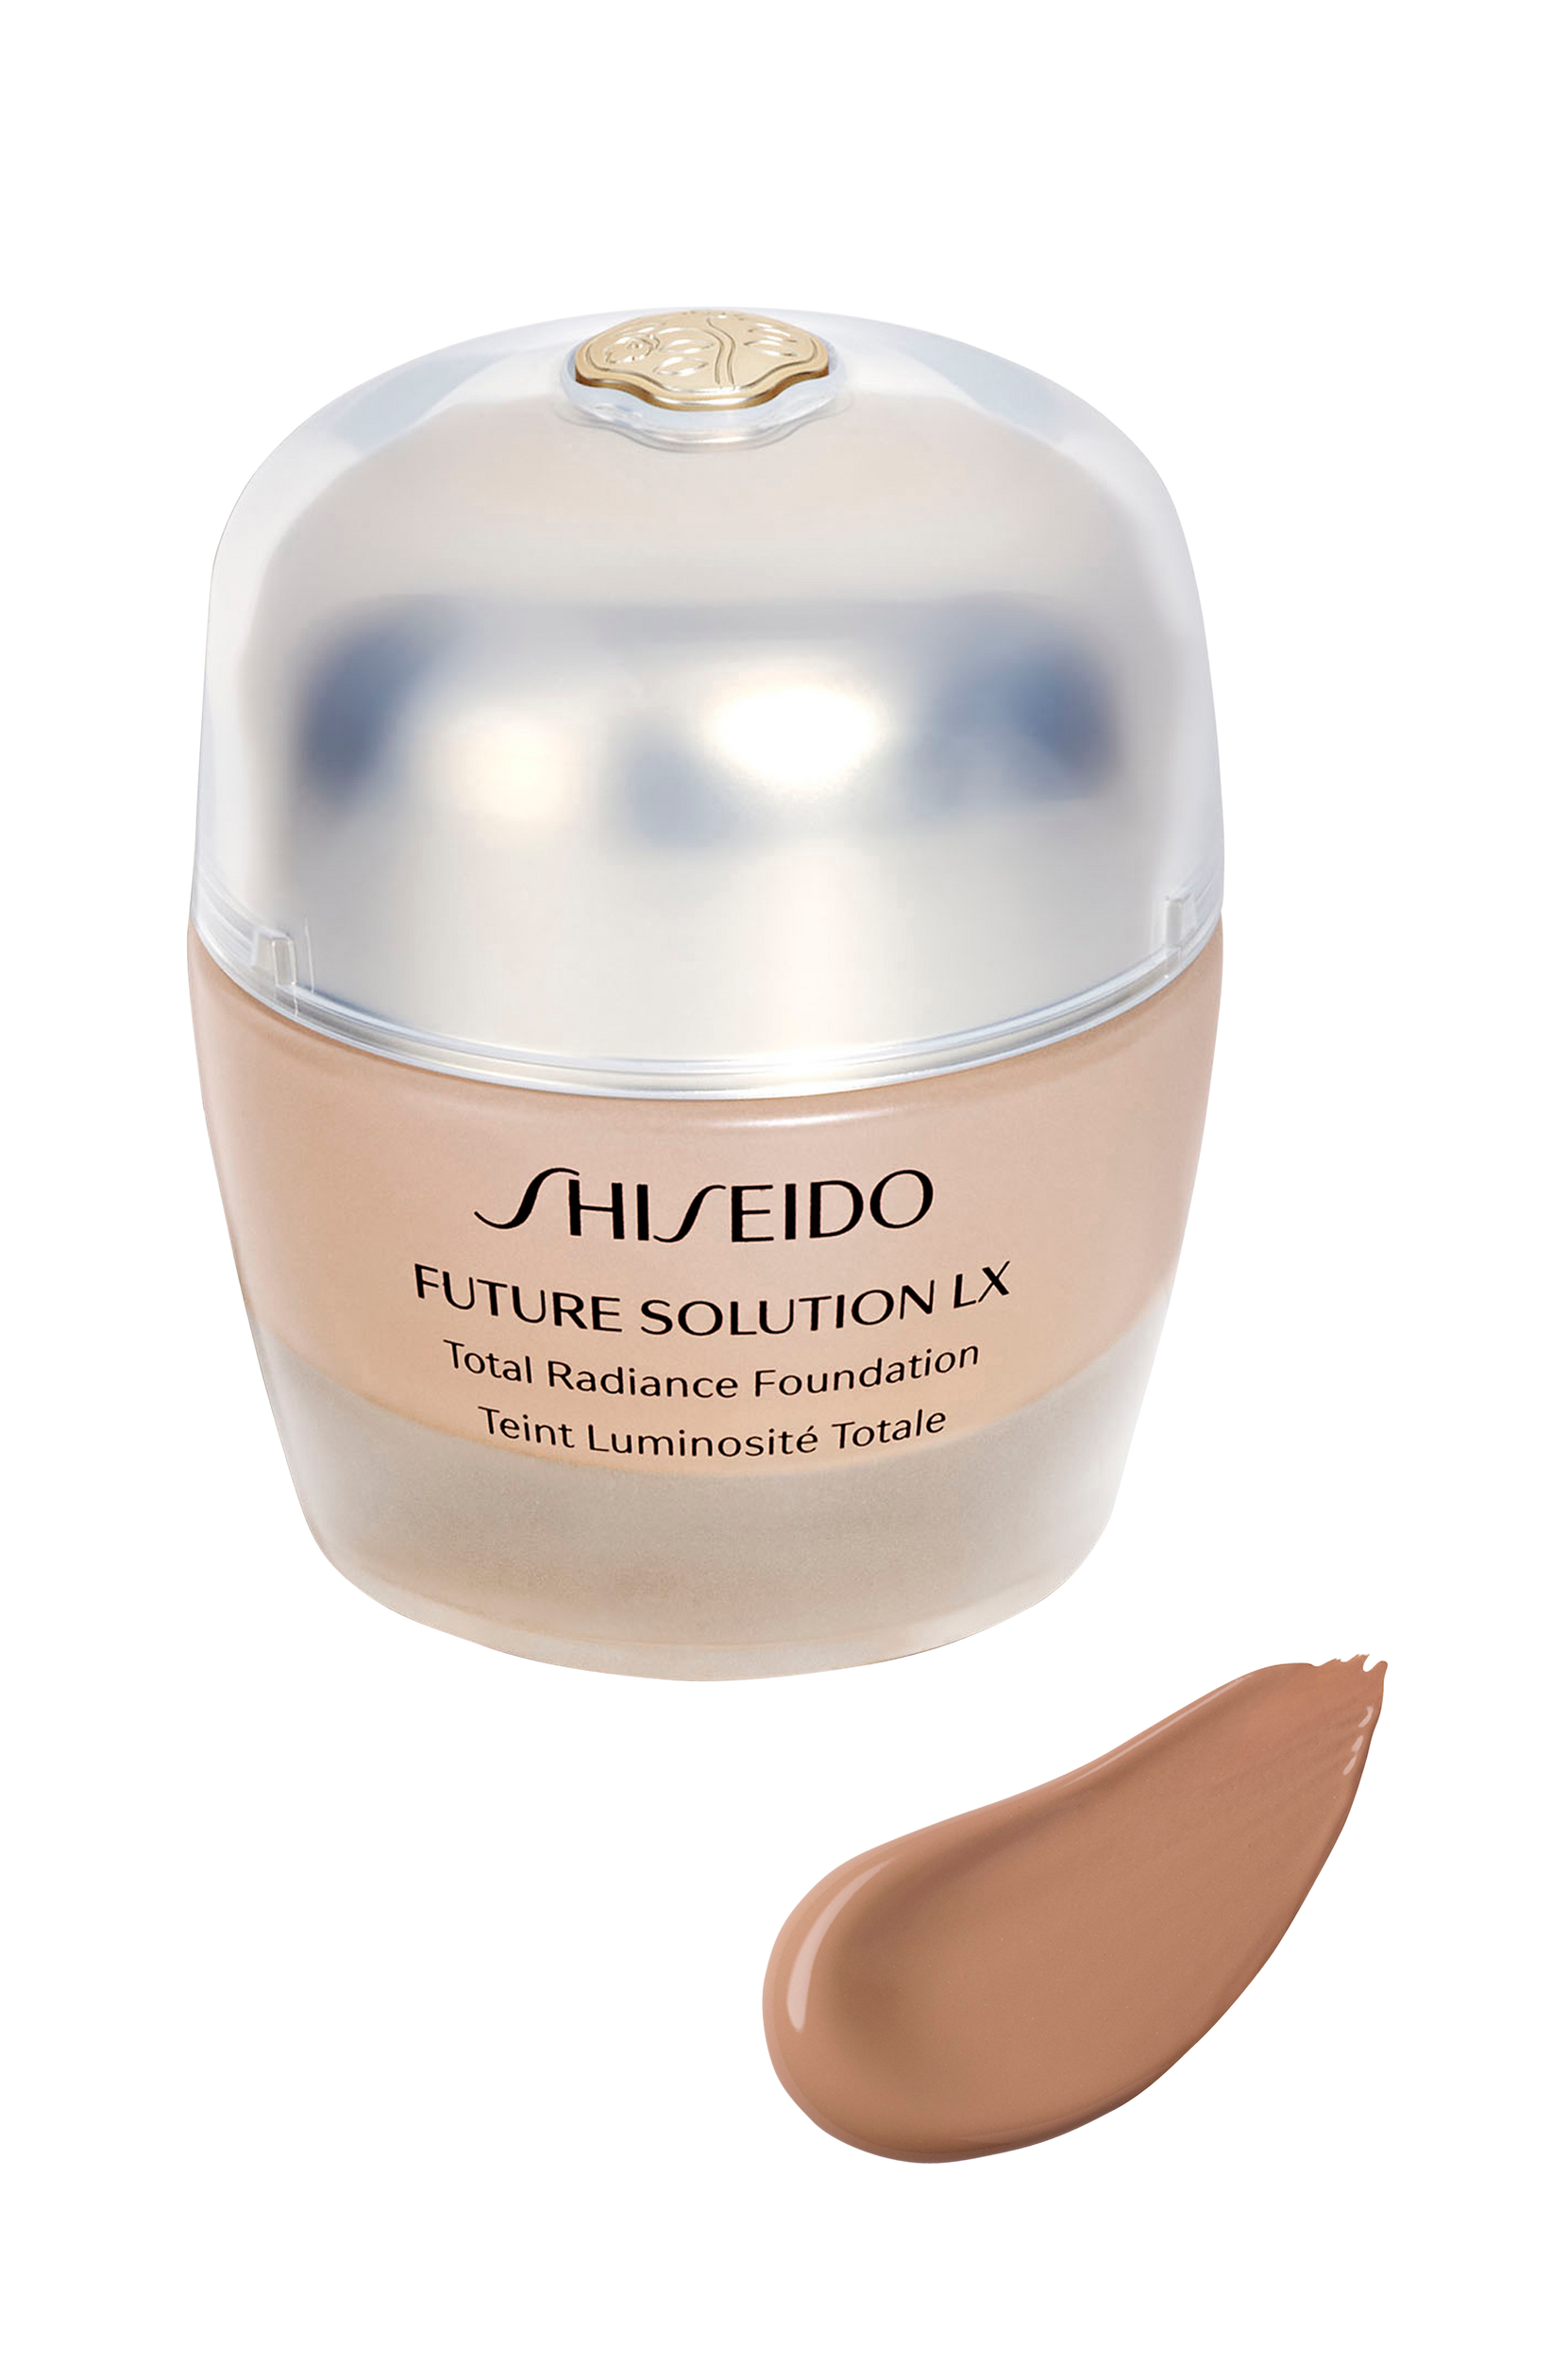 Future Solution Total Radiance Foundation 30 ml